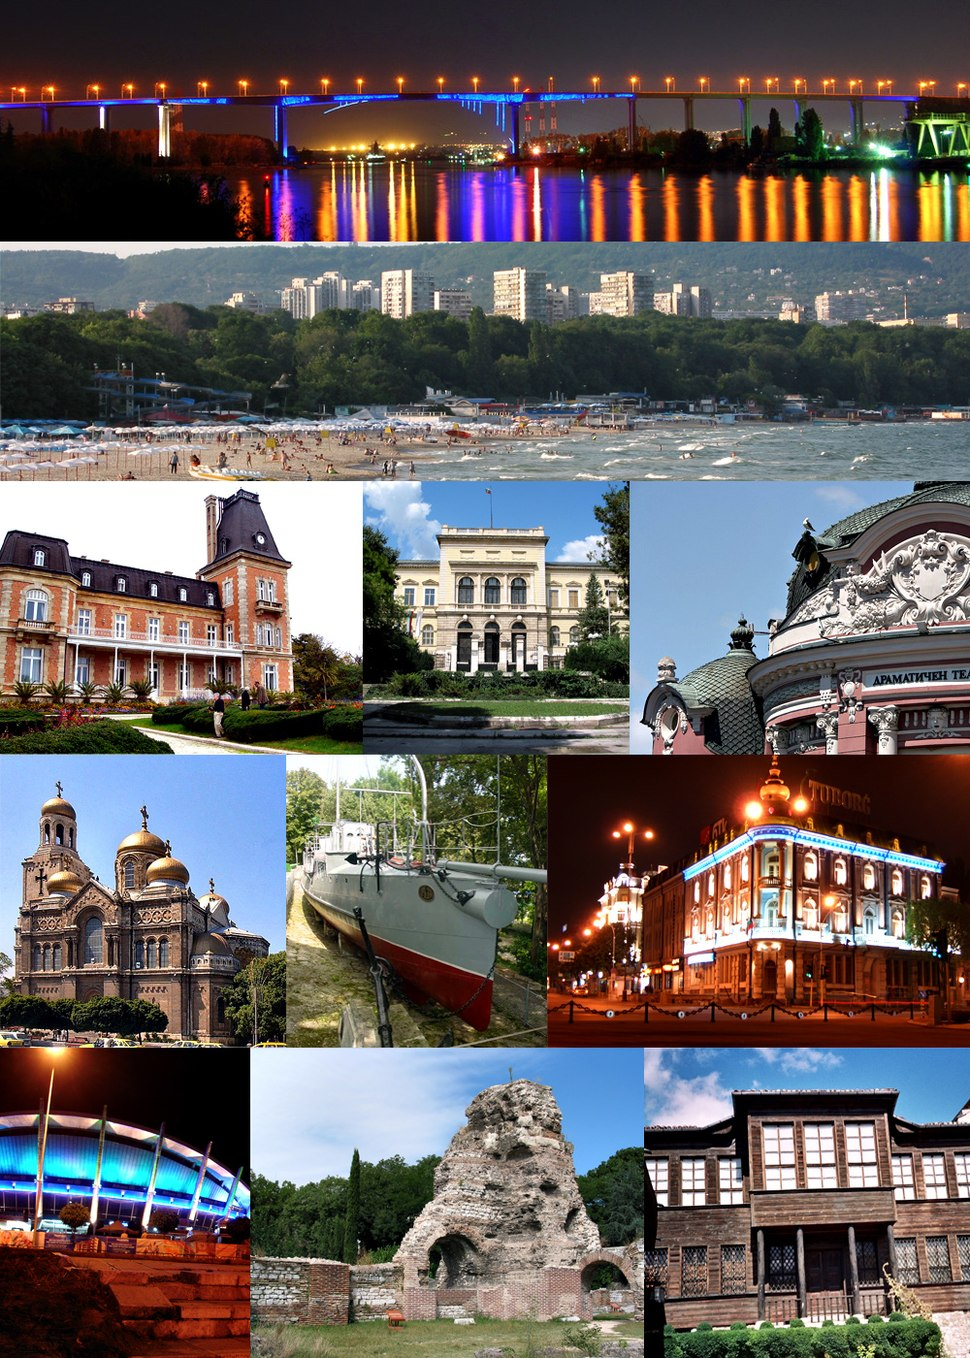 From top left: Asparuh Bridge, Black Sea beach, Euxinograd, Varna Archaeological Museum, Stoyan Bachvarov Dramatic Theatre, Dormition of the Mother of God Cathedral, Drazki torpedo boat, The Navy Club, Palace of Culture and Sports, The ancient Roman baths, Varna Ethnographic Museum